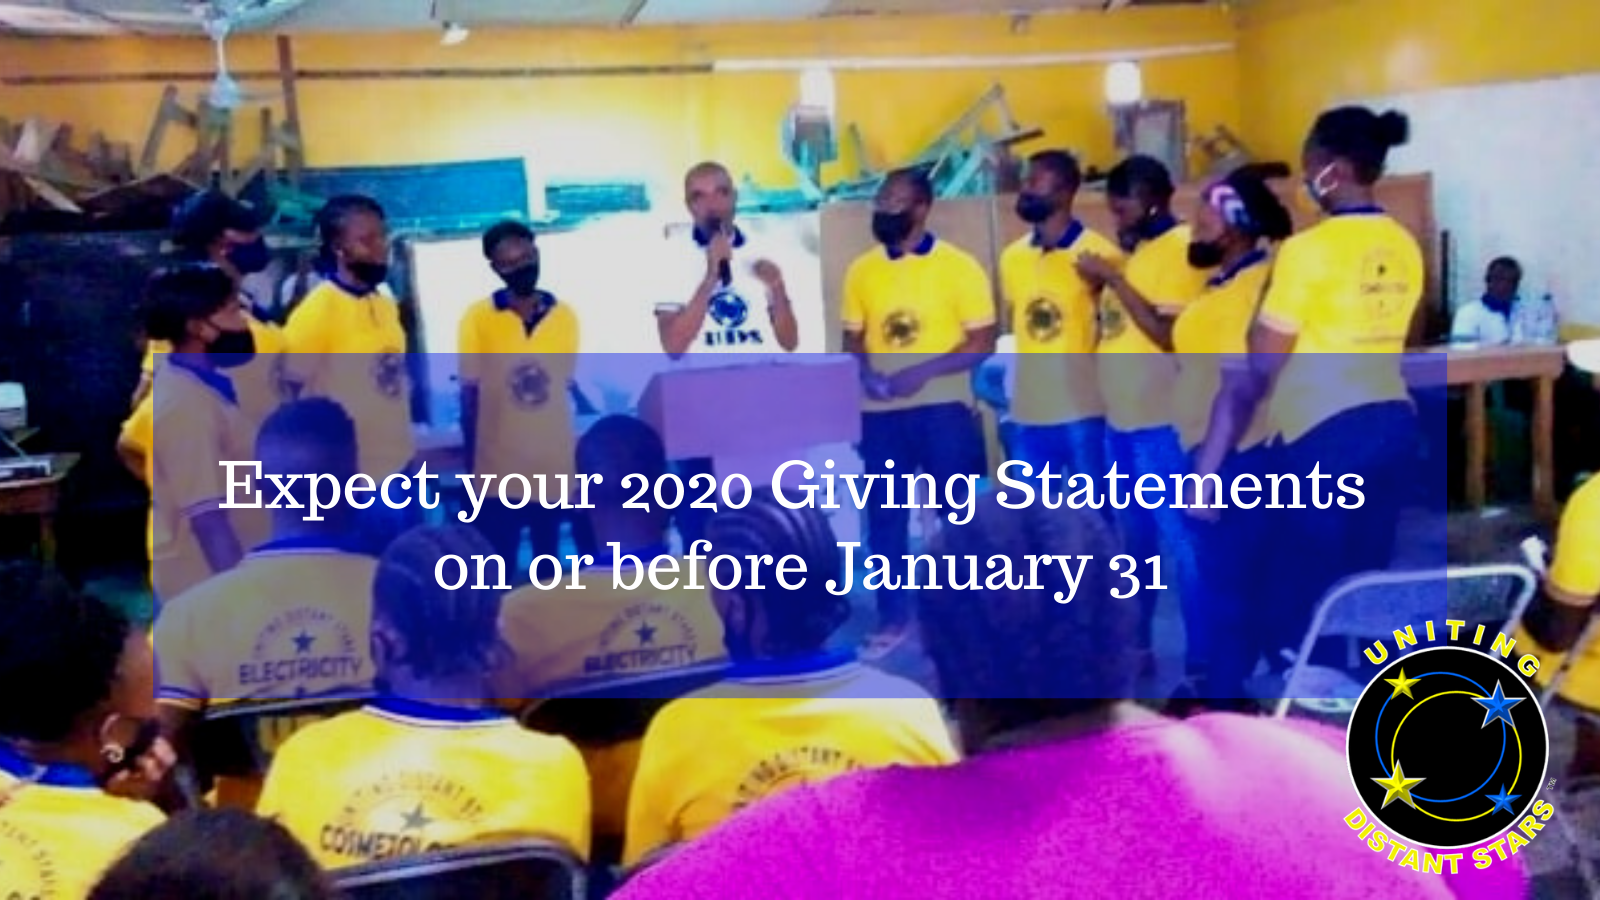 Your 2020 Giving Statements Arrive Soon